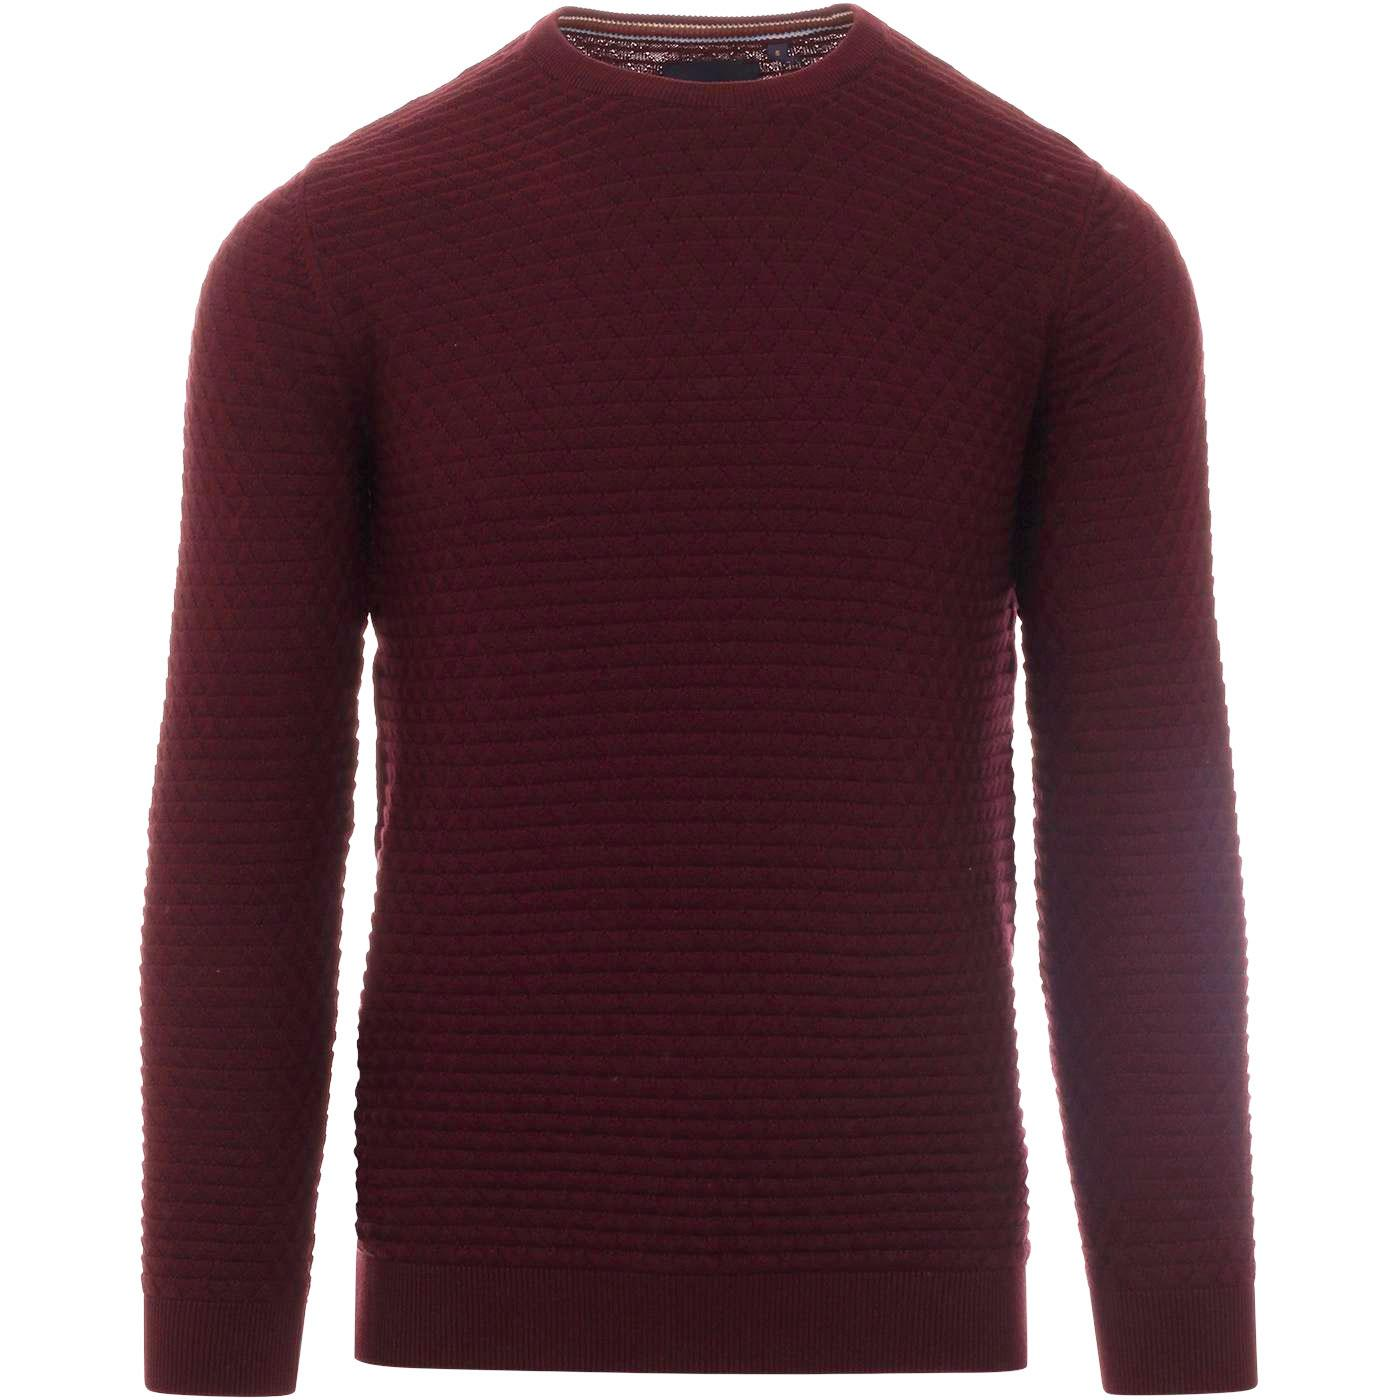 GUIDE LONDON Retro Mod Diamond Waffle Knit Jumper